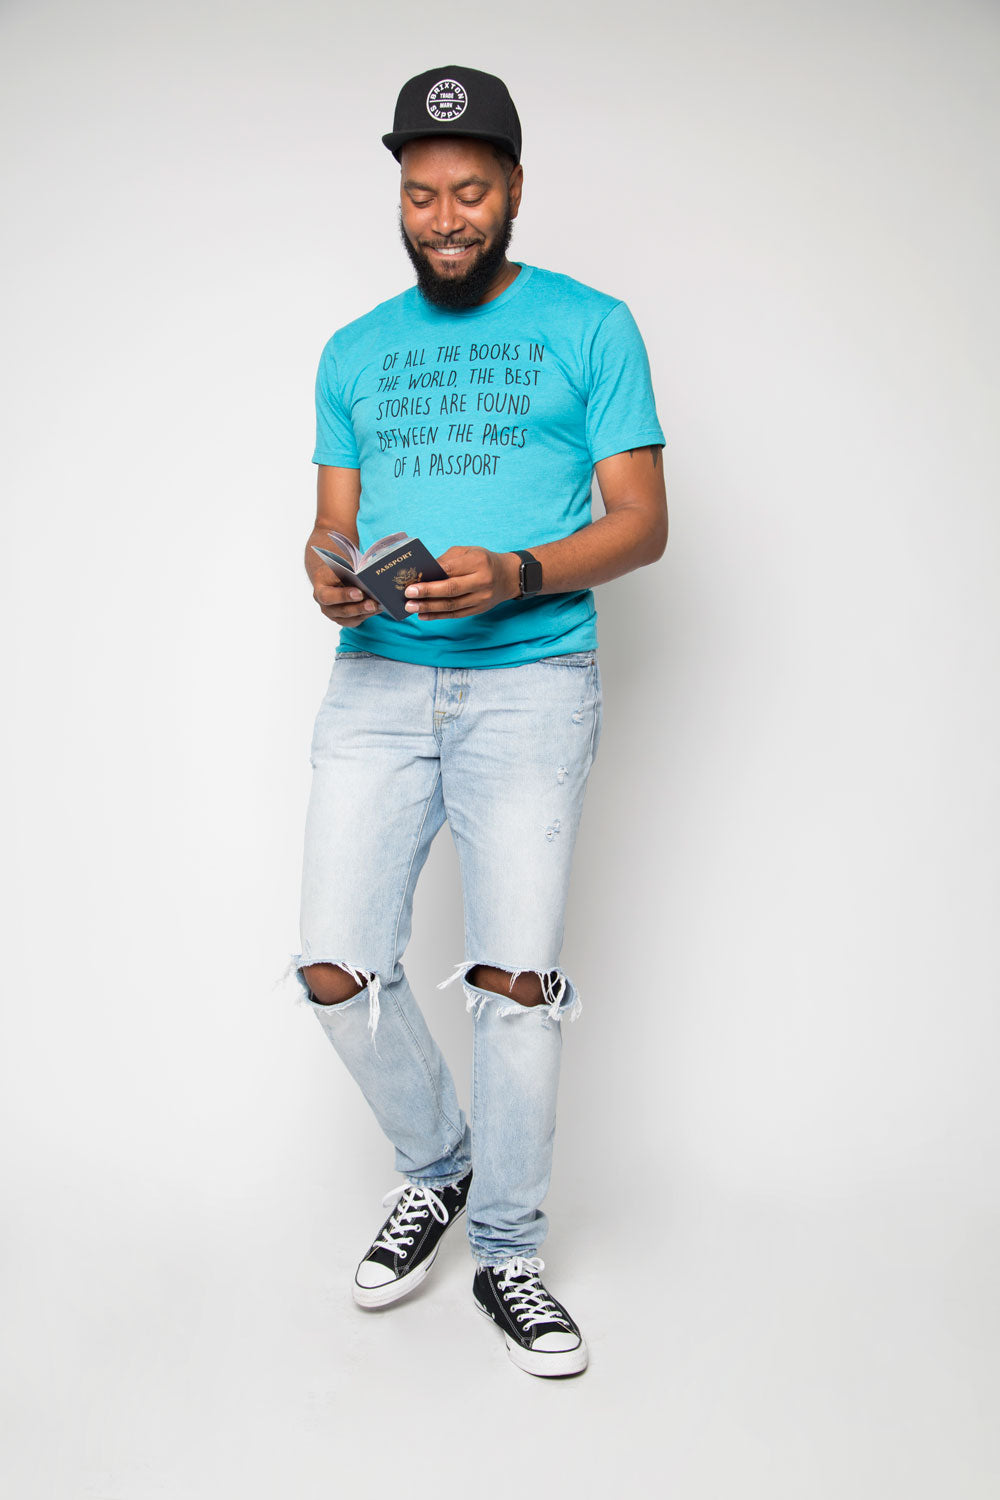 Passport Shirt in Bondi Blue - Trunk Series